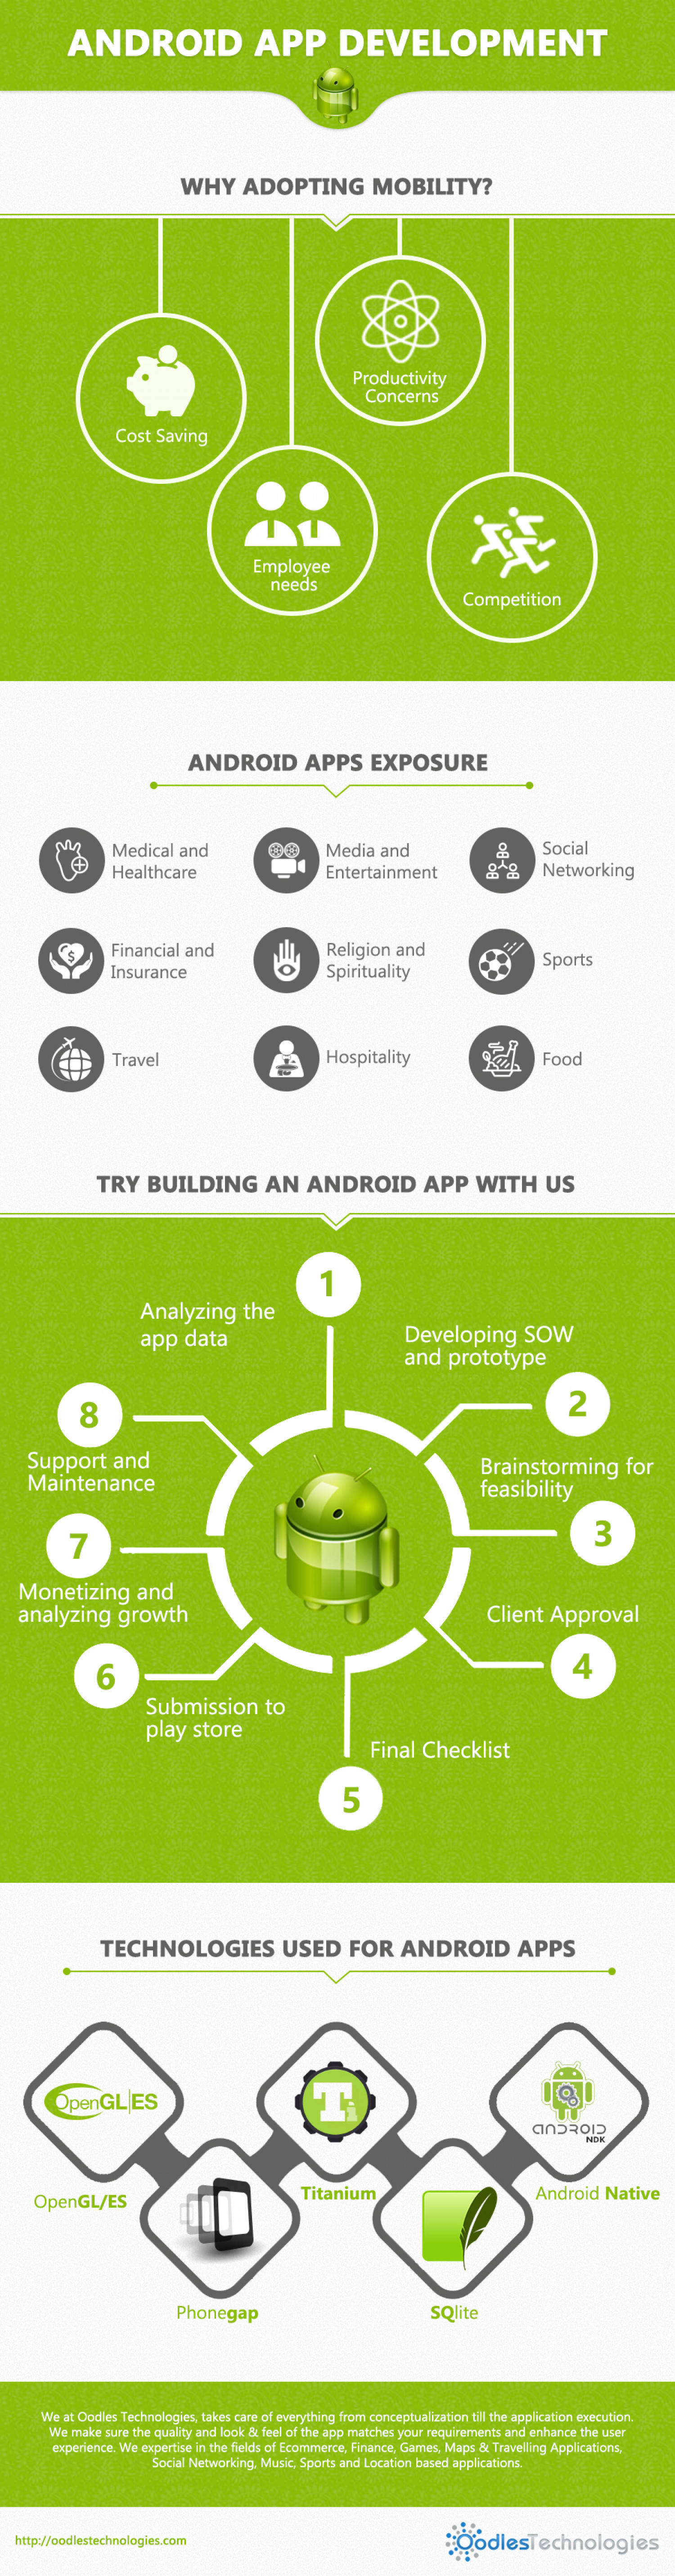 Android App Development Services  Infographic